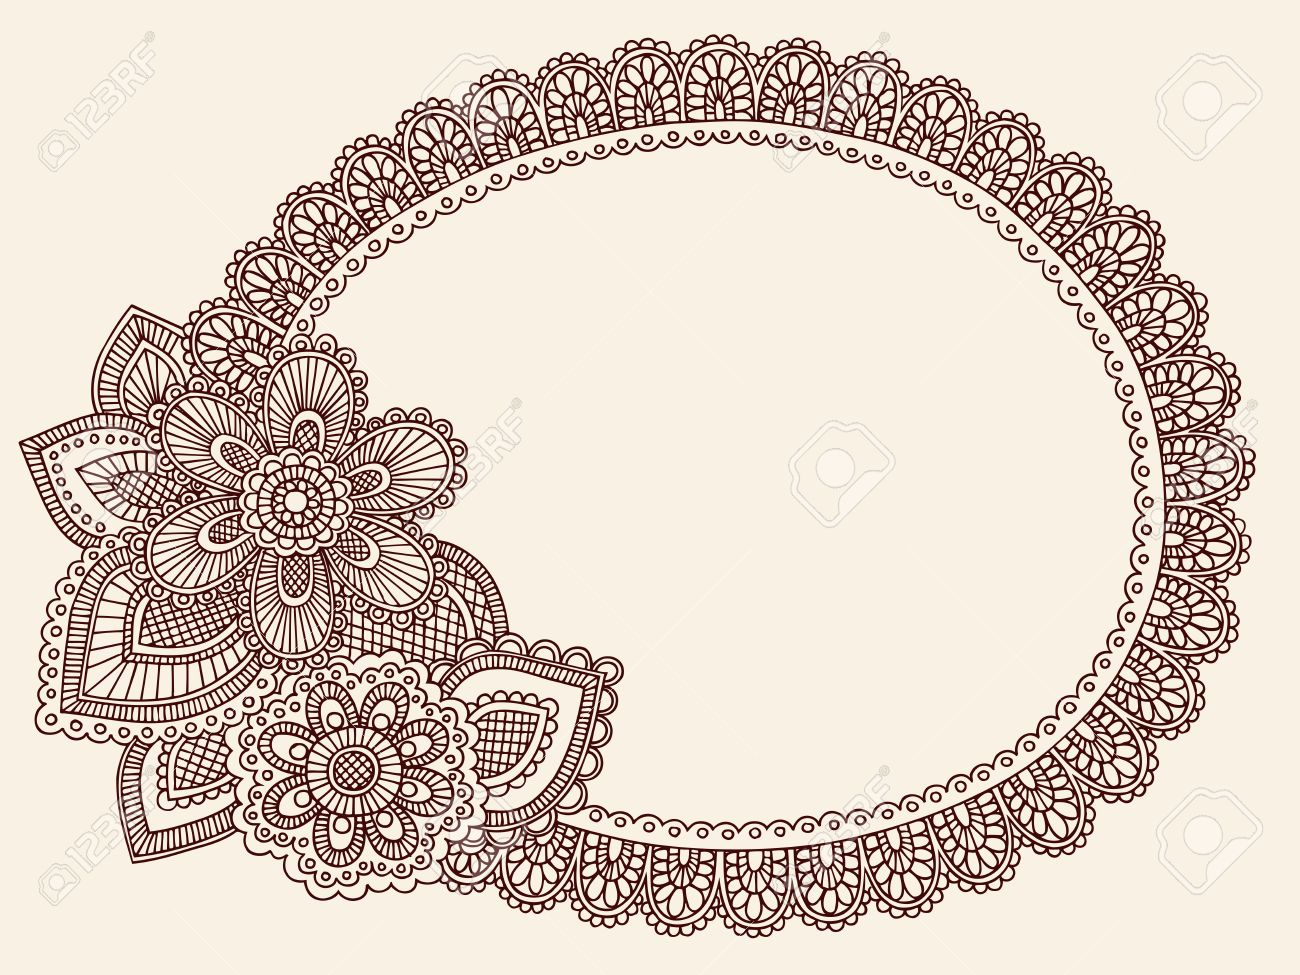 Hand-Drawn Lace Doilie Henna/Mehndi Paisley Flower Doodle Vector Illustration Frame Border Design Element Stock Vector - 8579823